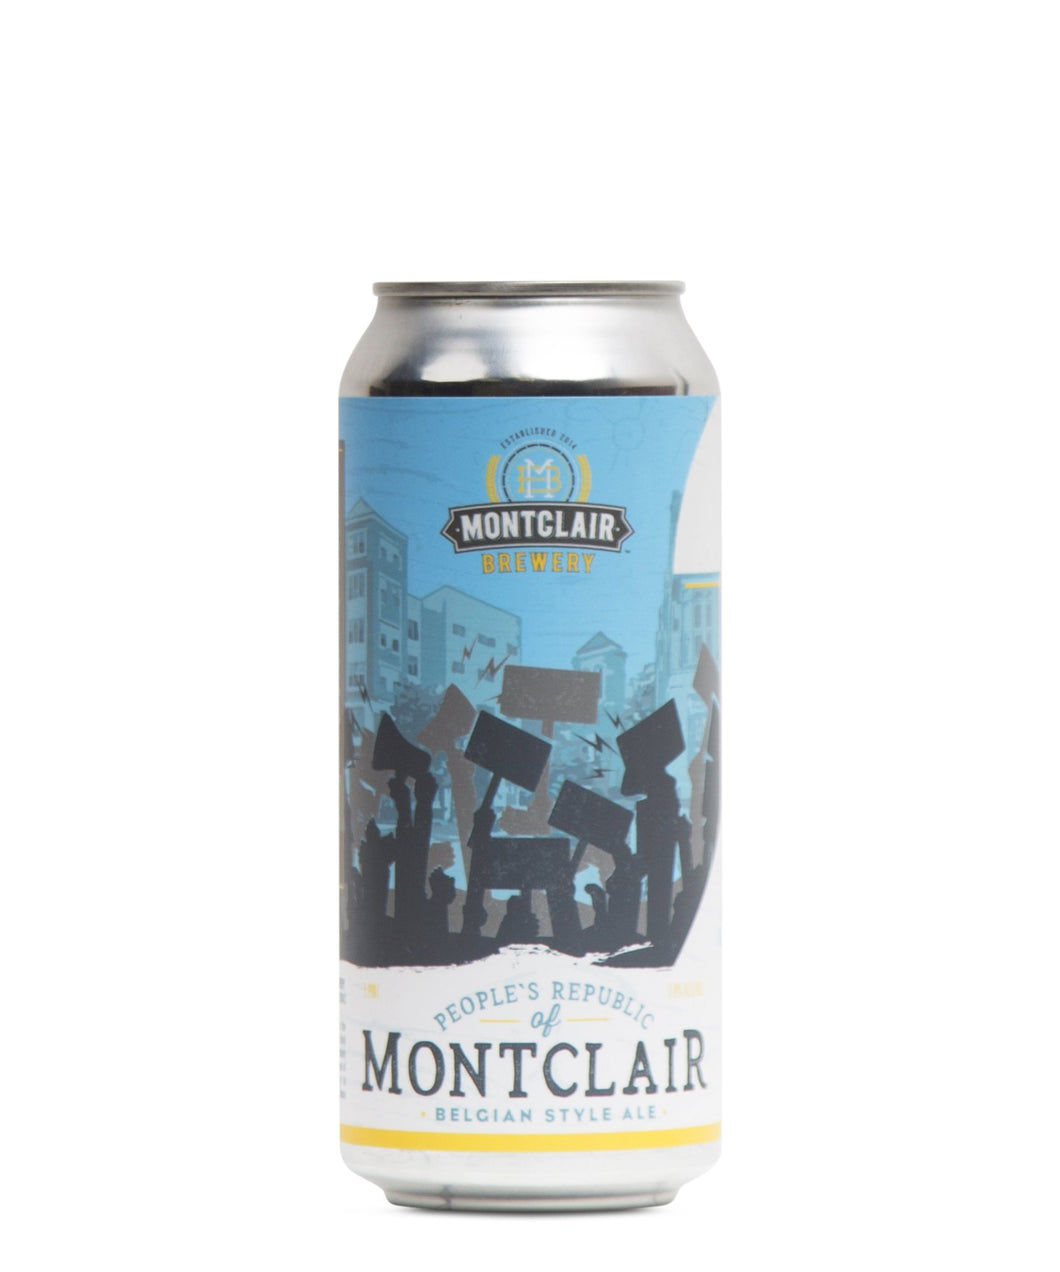 Peoples Republic of Montclair - Montclair Brewery Delivered By TapRm